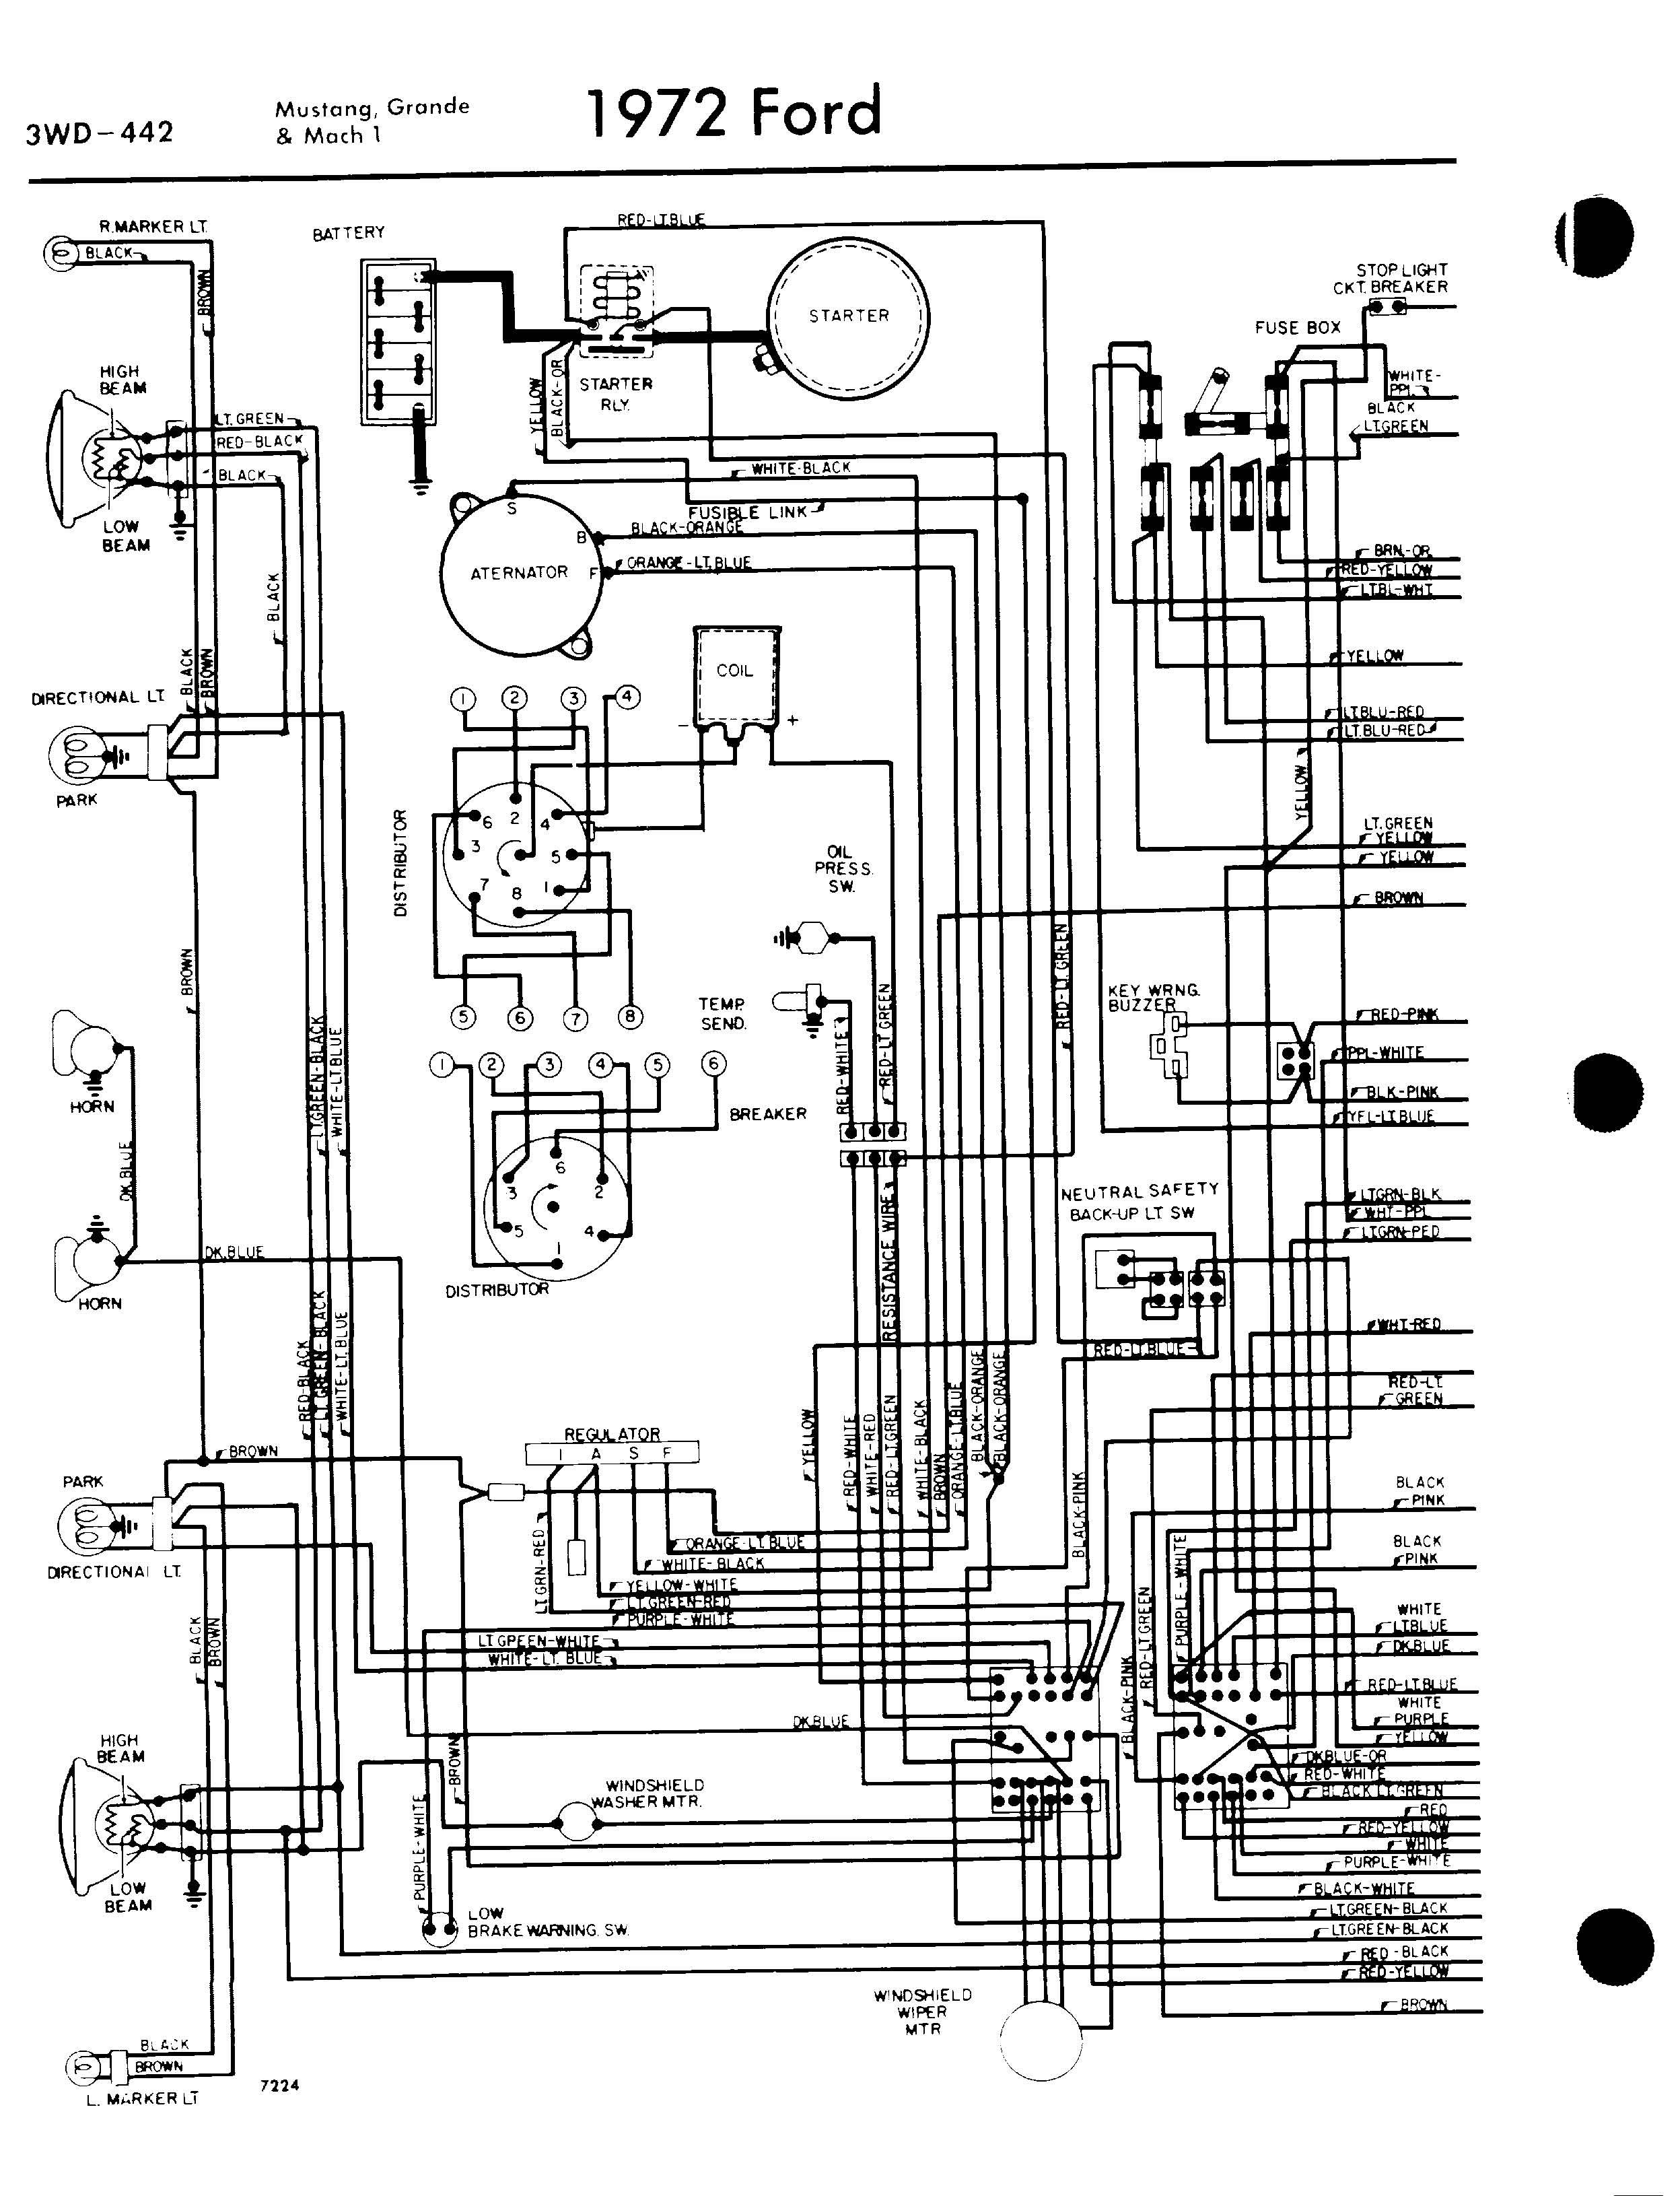 1971 mach 1 engine wiring harness